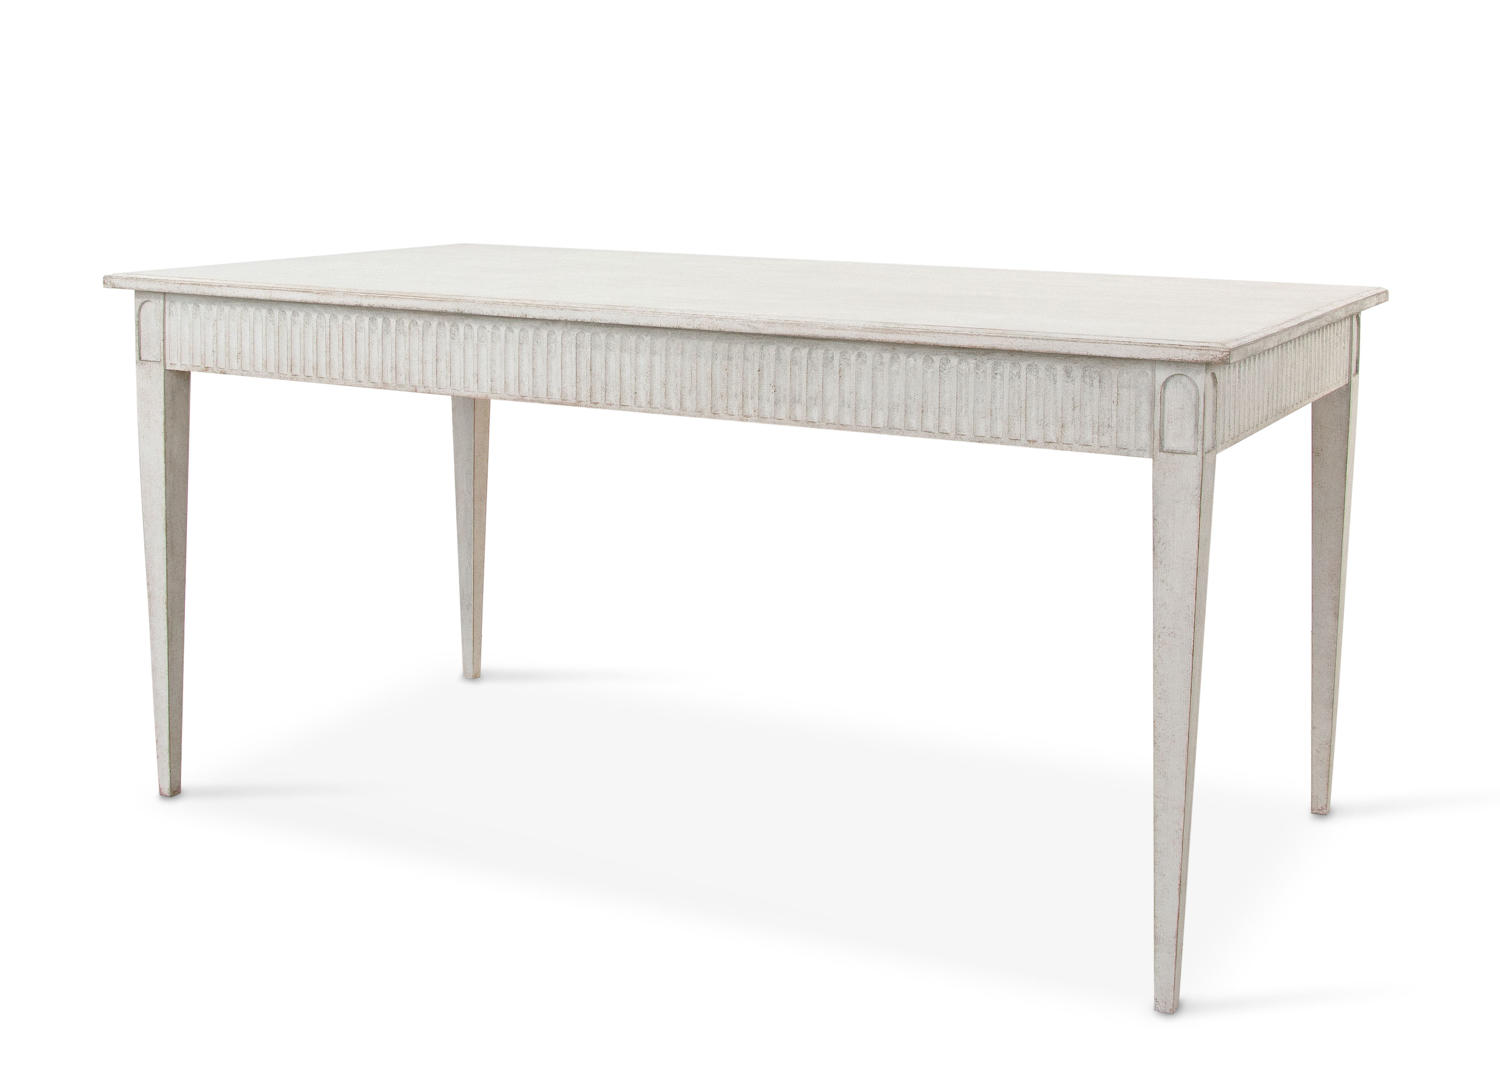 Dining table with white background